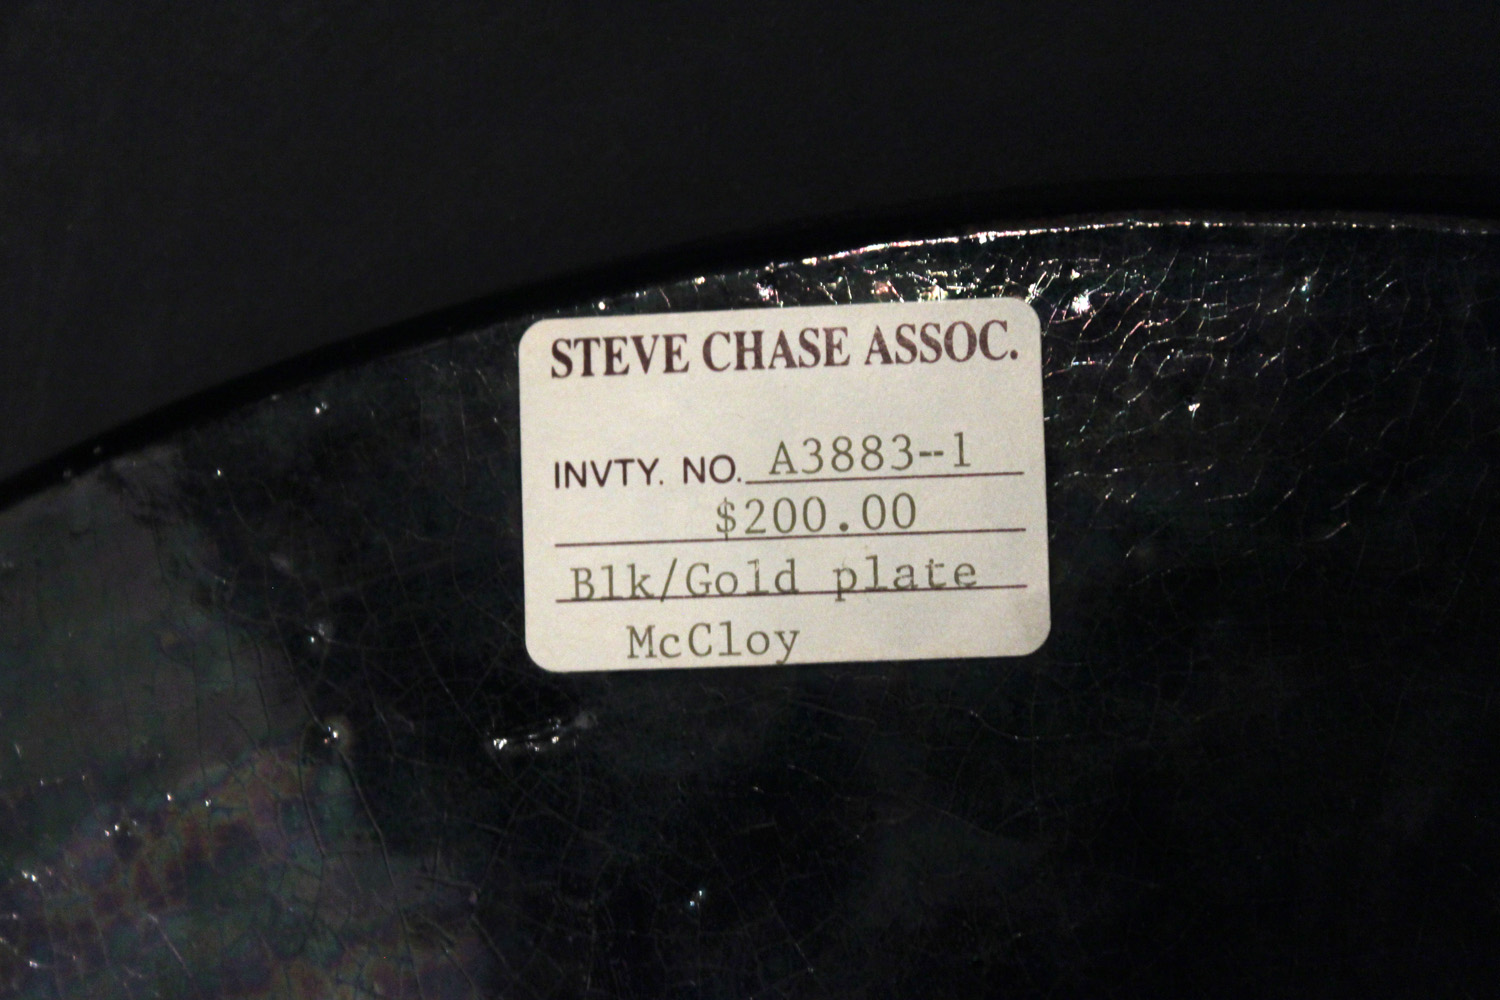 Chase 25 McCloy charger ceramic40 detail3 hires.jpg